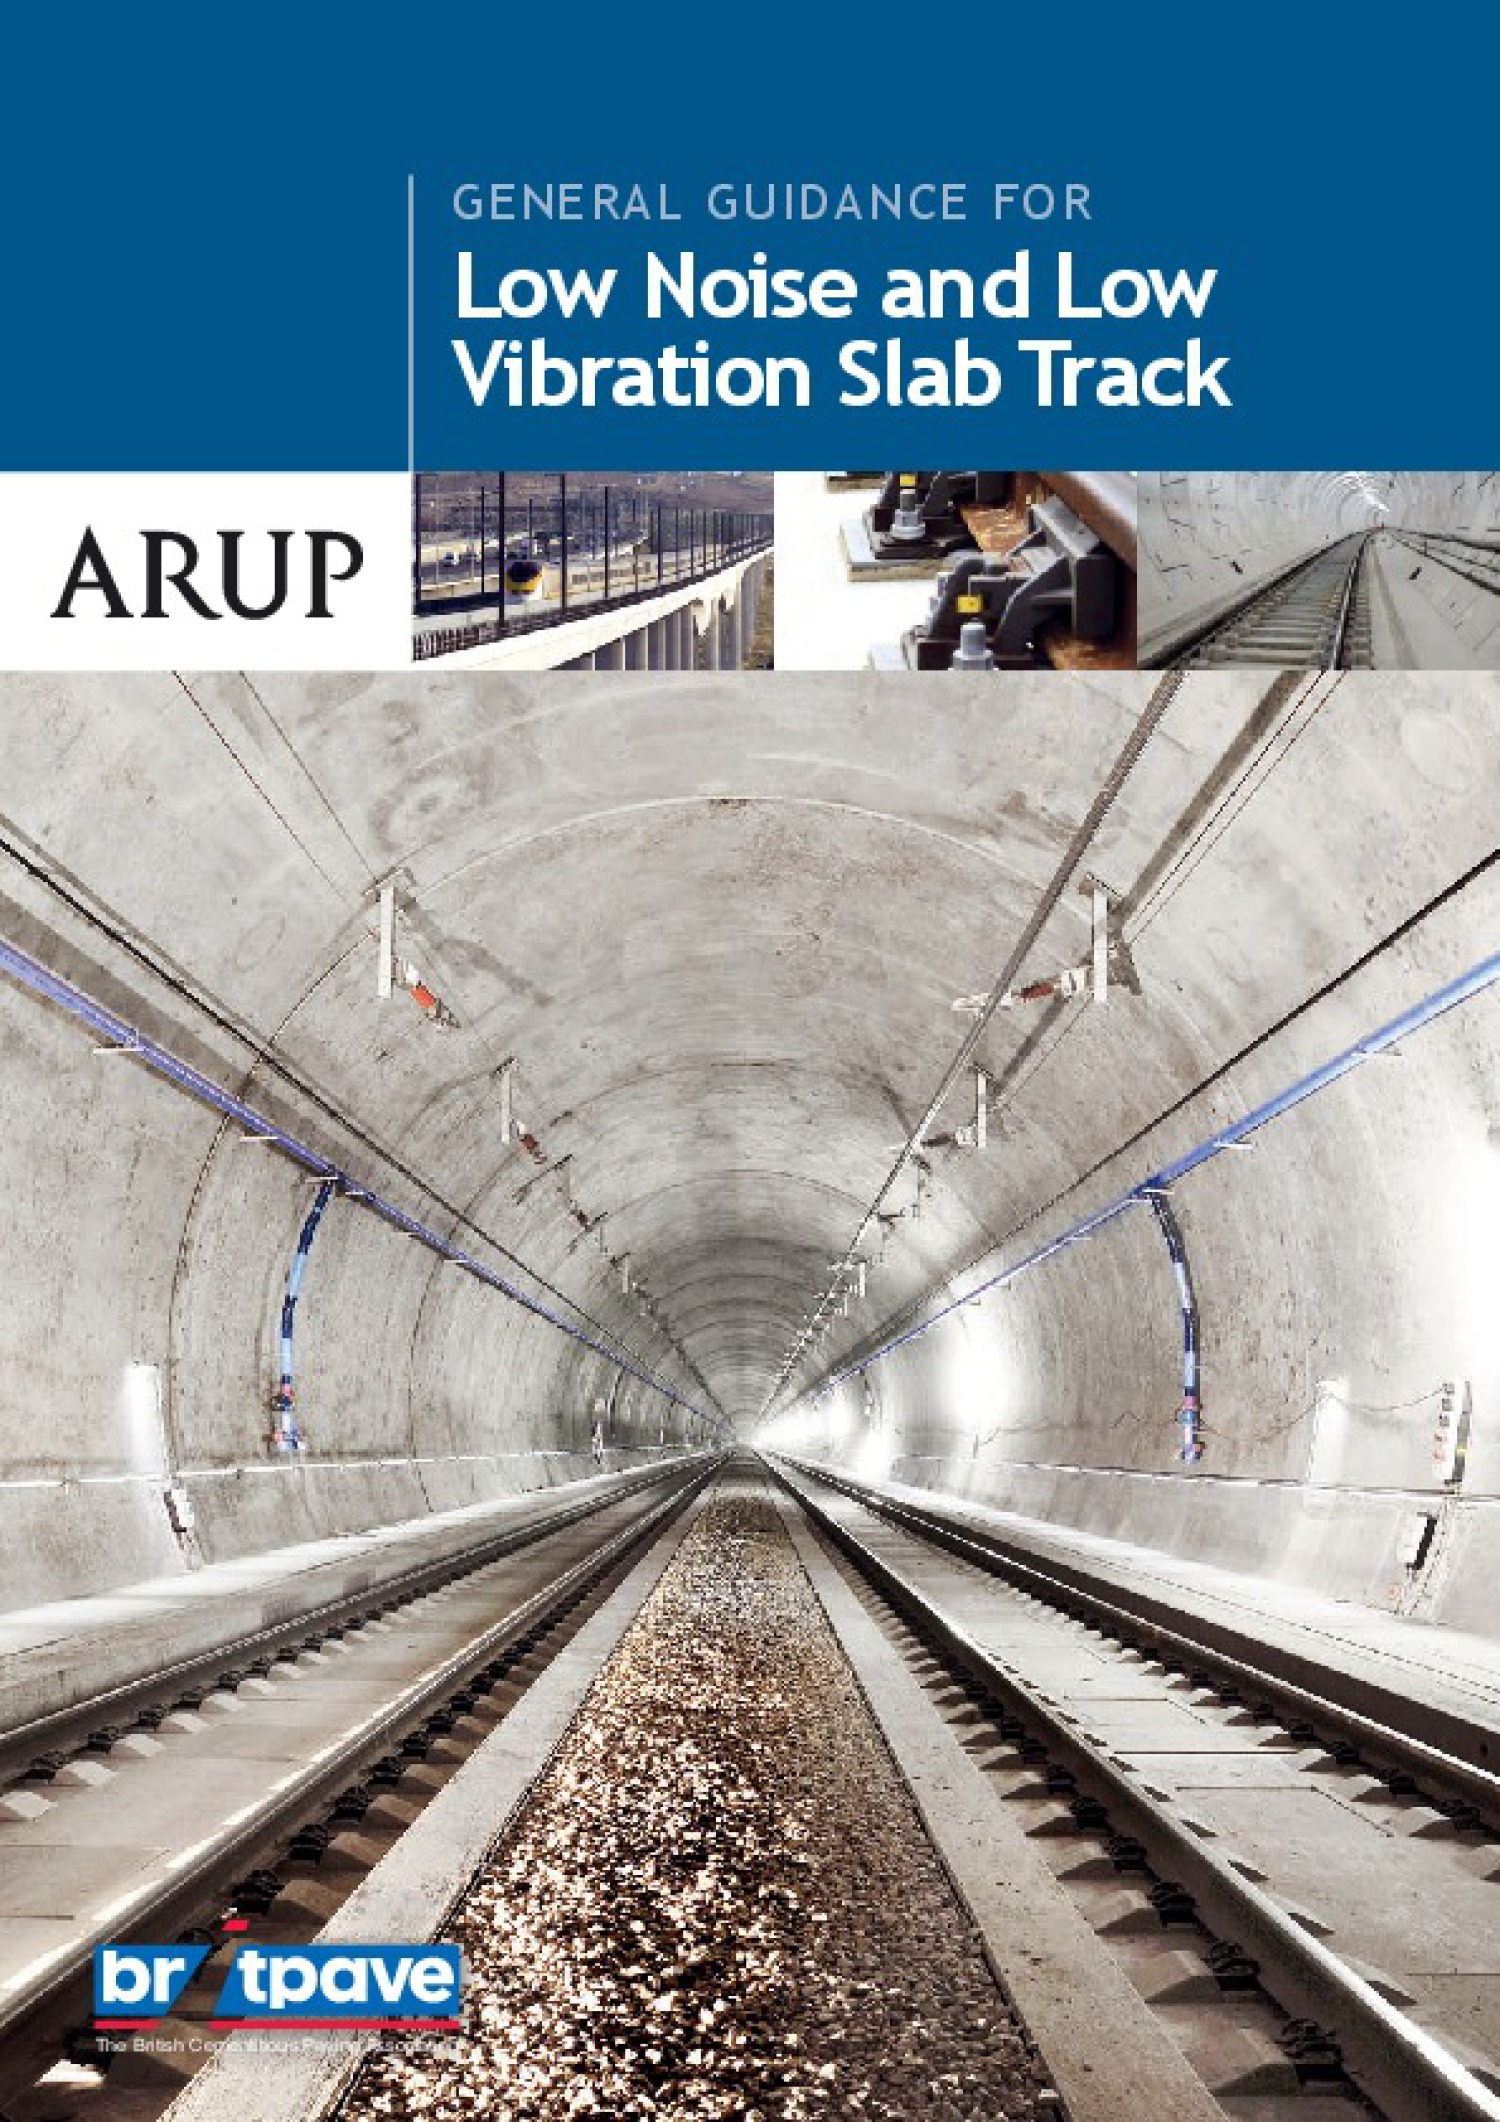 Picture of General Guidance for low noise and low vibration slab track